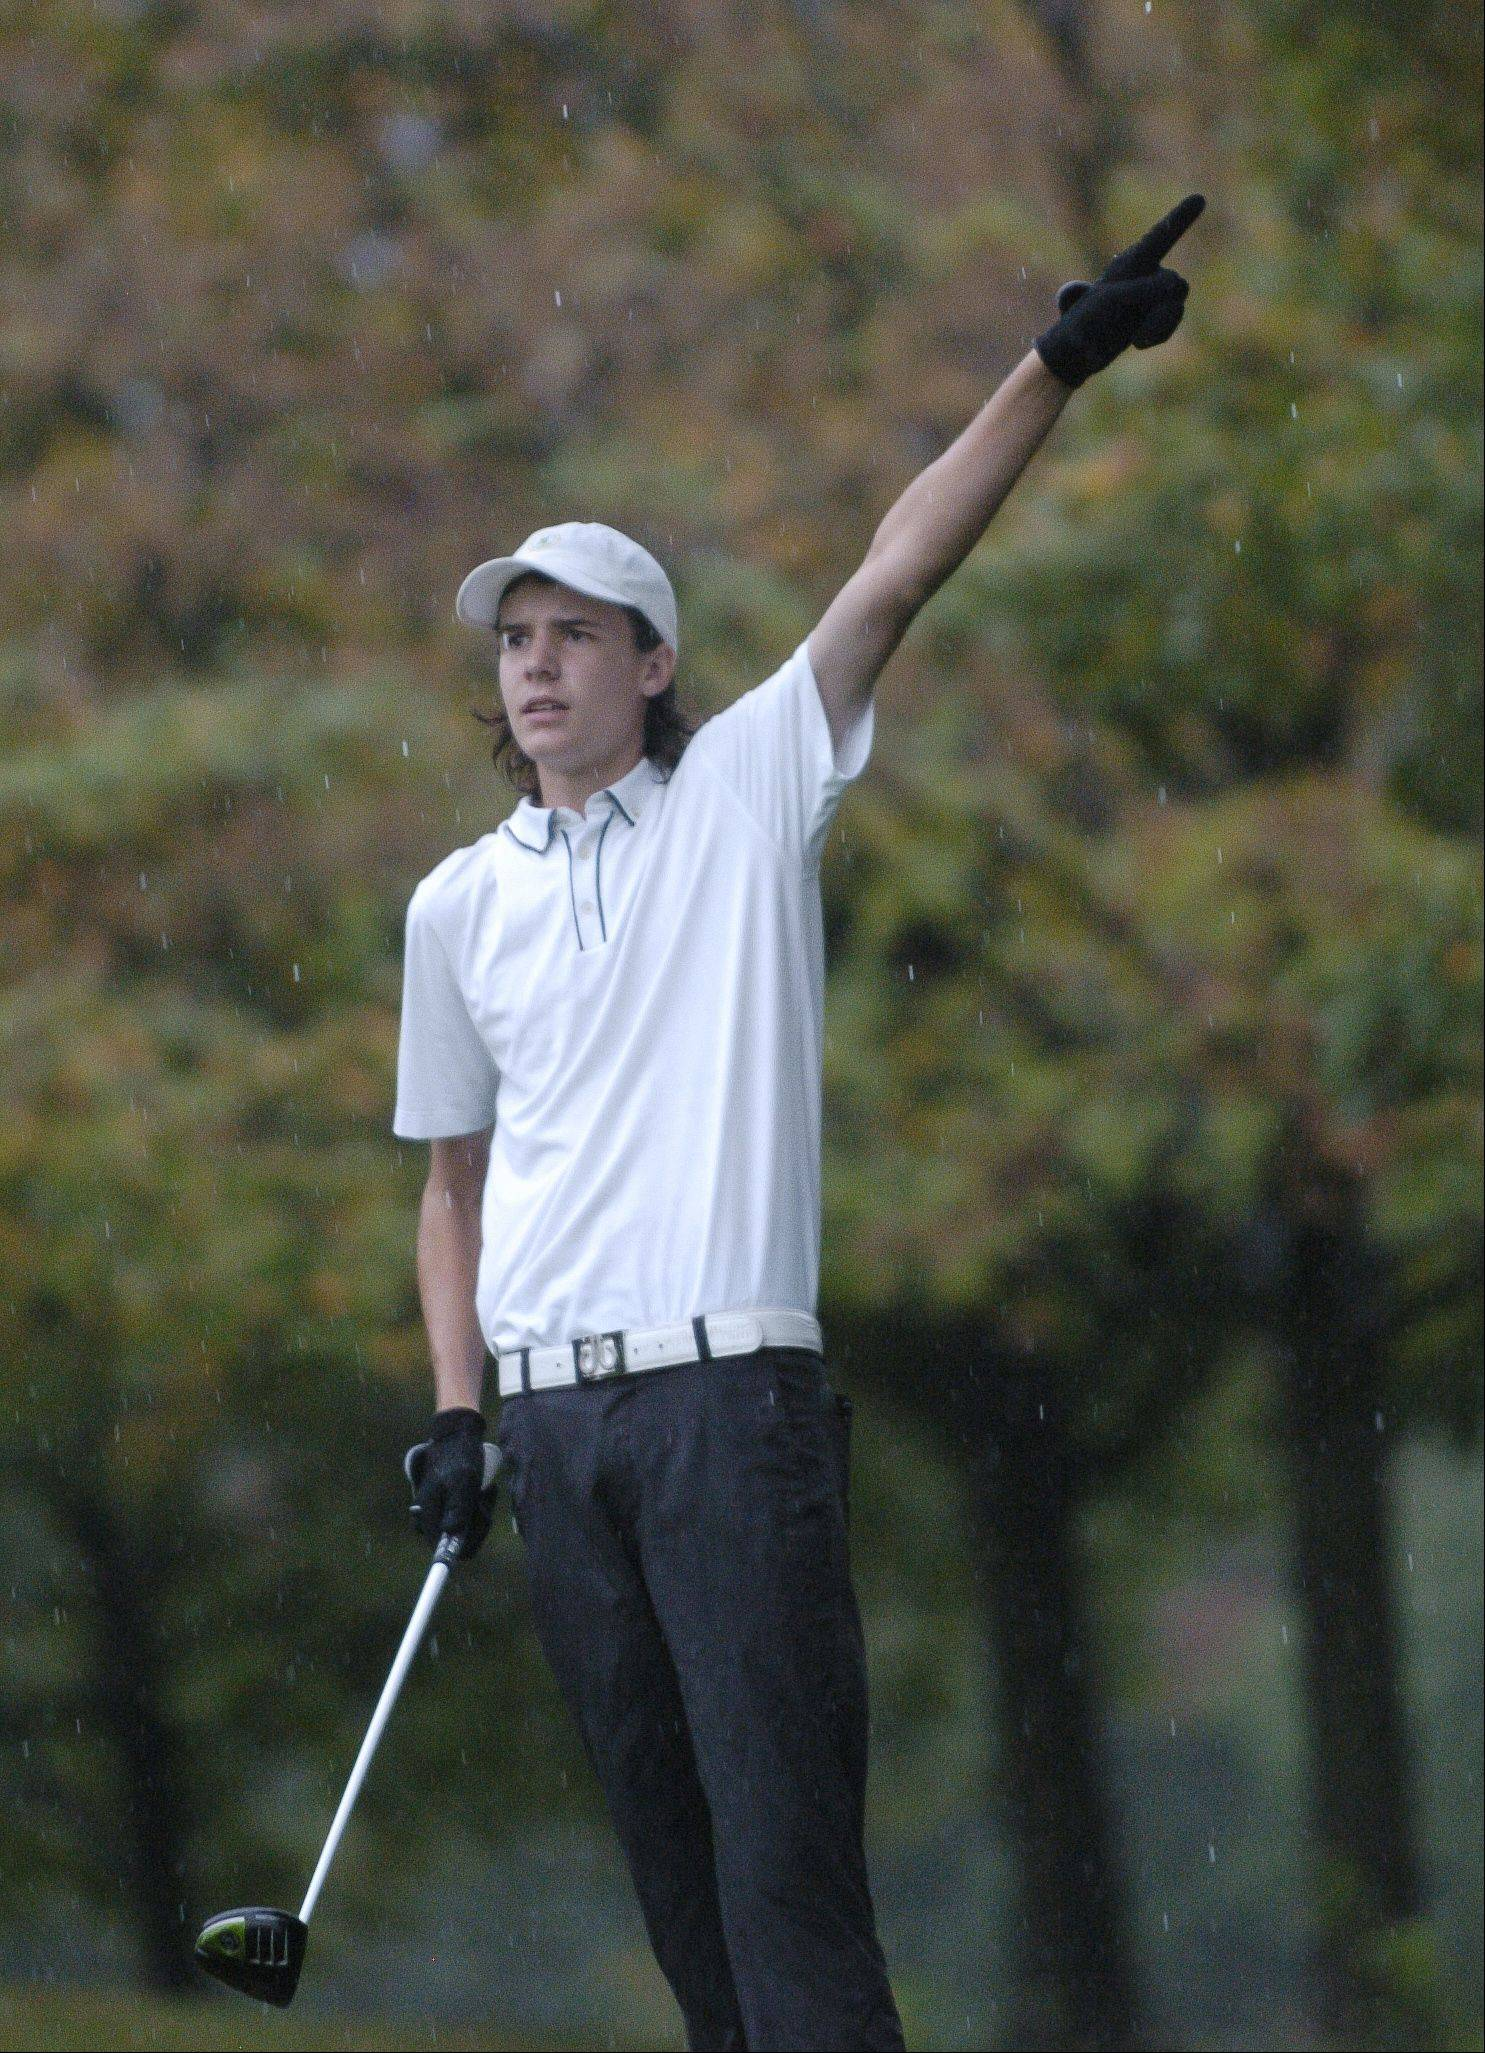 Wheaton Warrenville South's Will Kelly wants his fourth hole tee shot to go left. Rain briefly halted play in Bartlett Thursday at a DuPage Valley Conference boys golf tournament at Bartlett Hills Golf course.